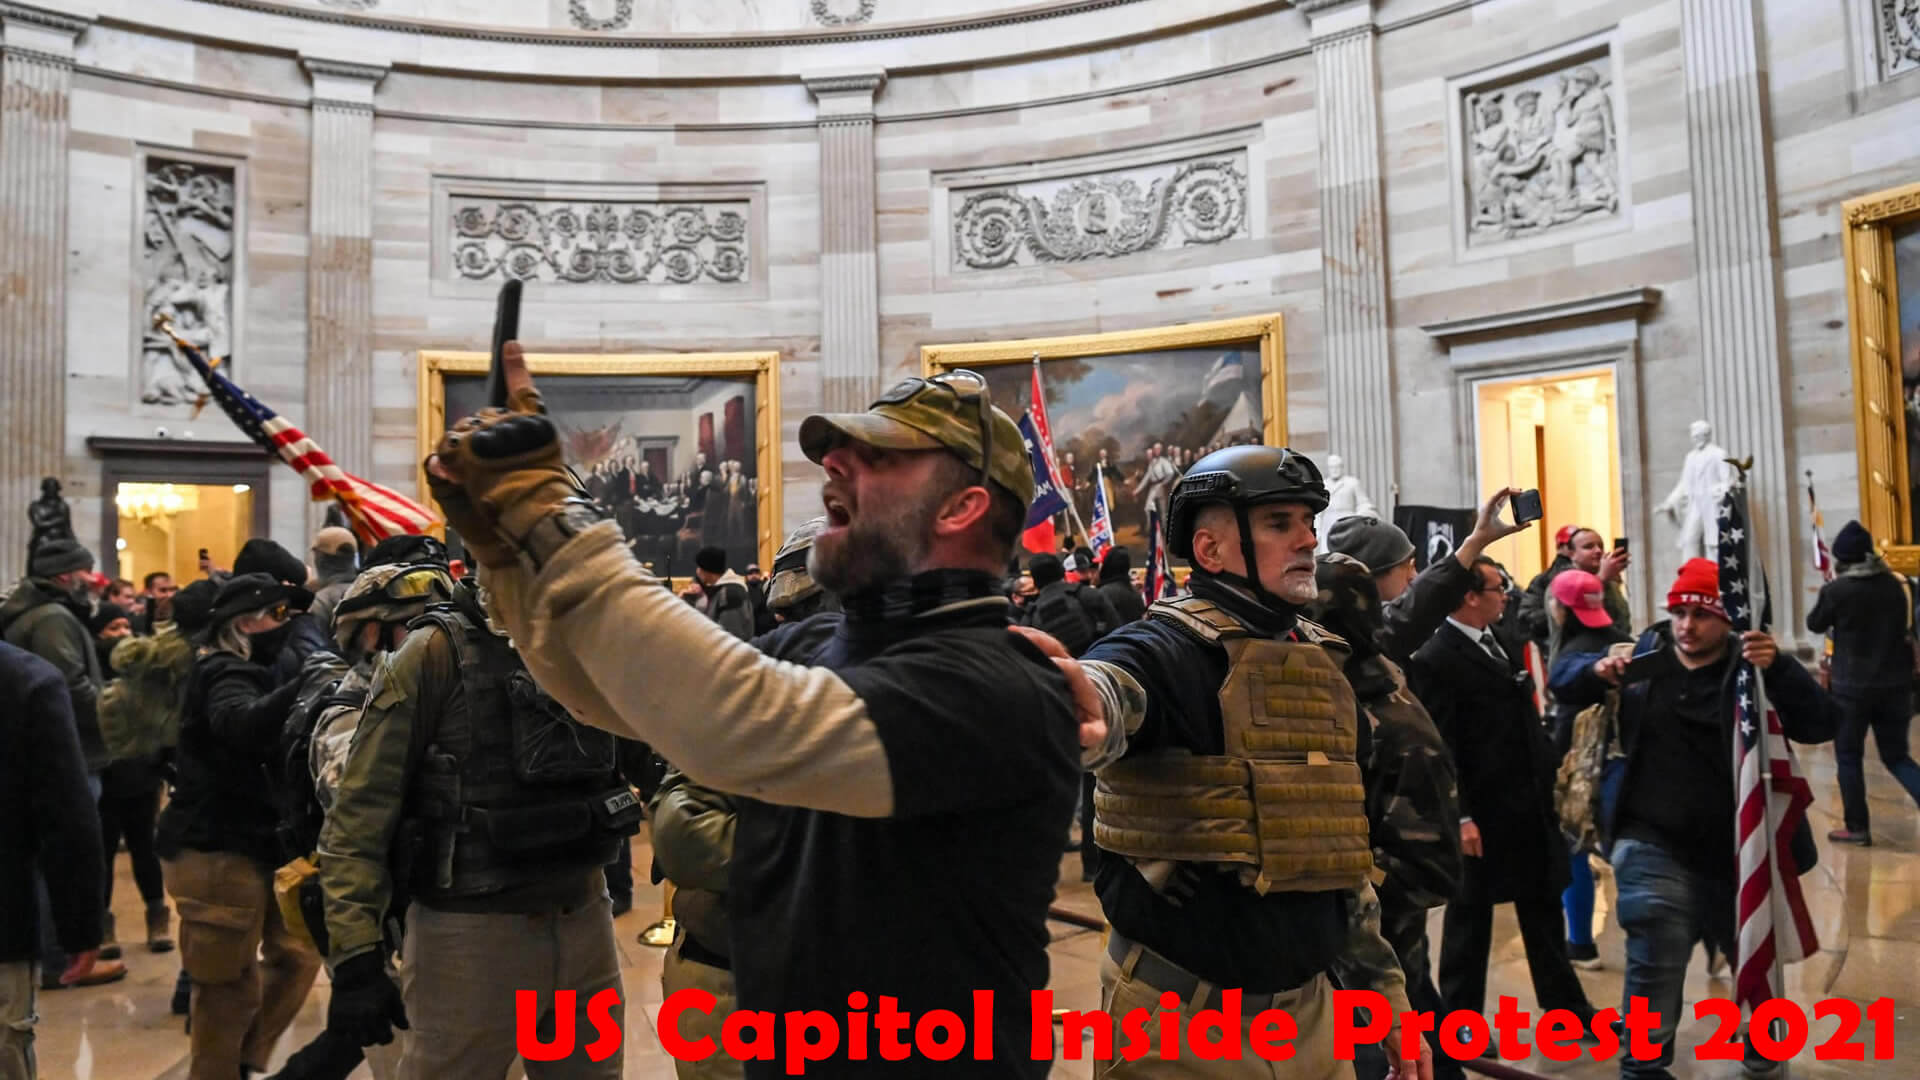 US Capitol Inside Protest 2021